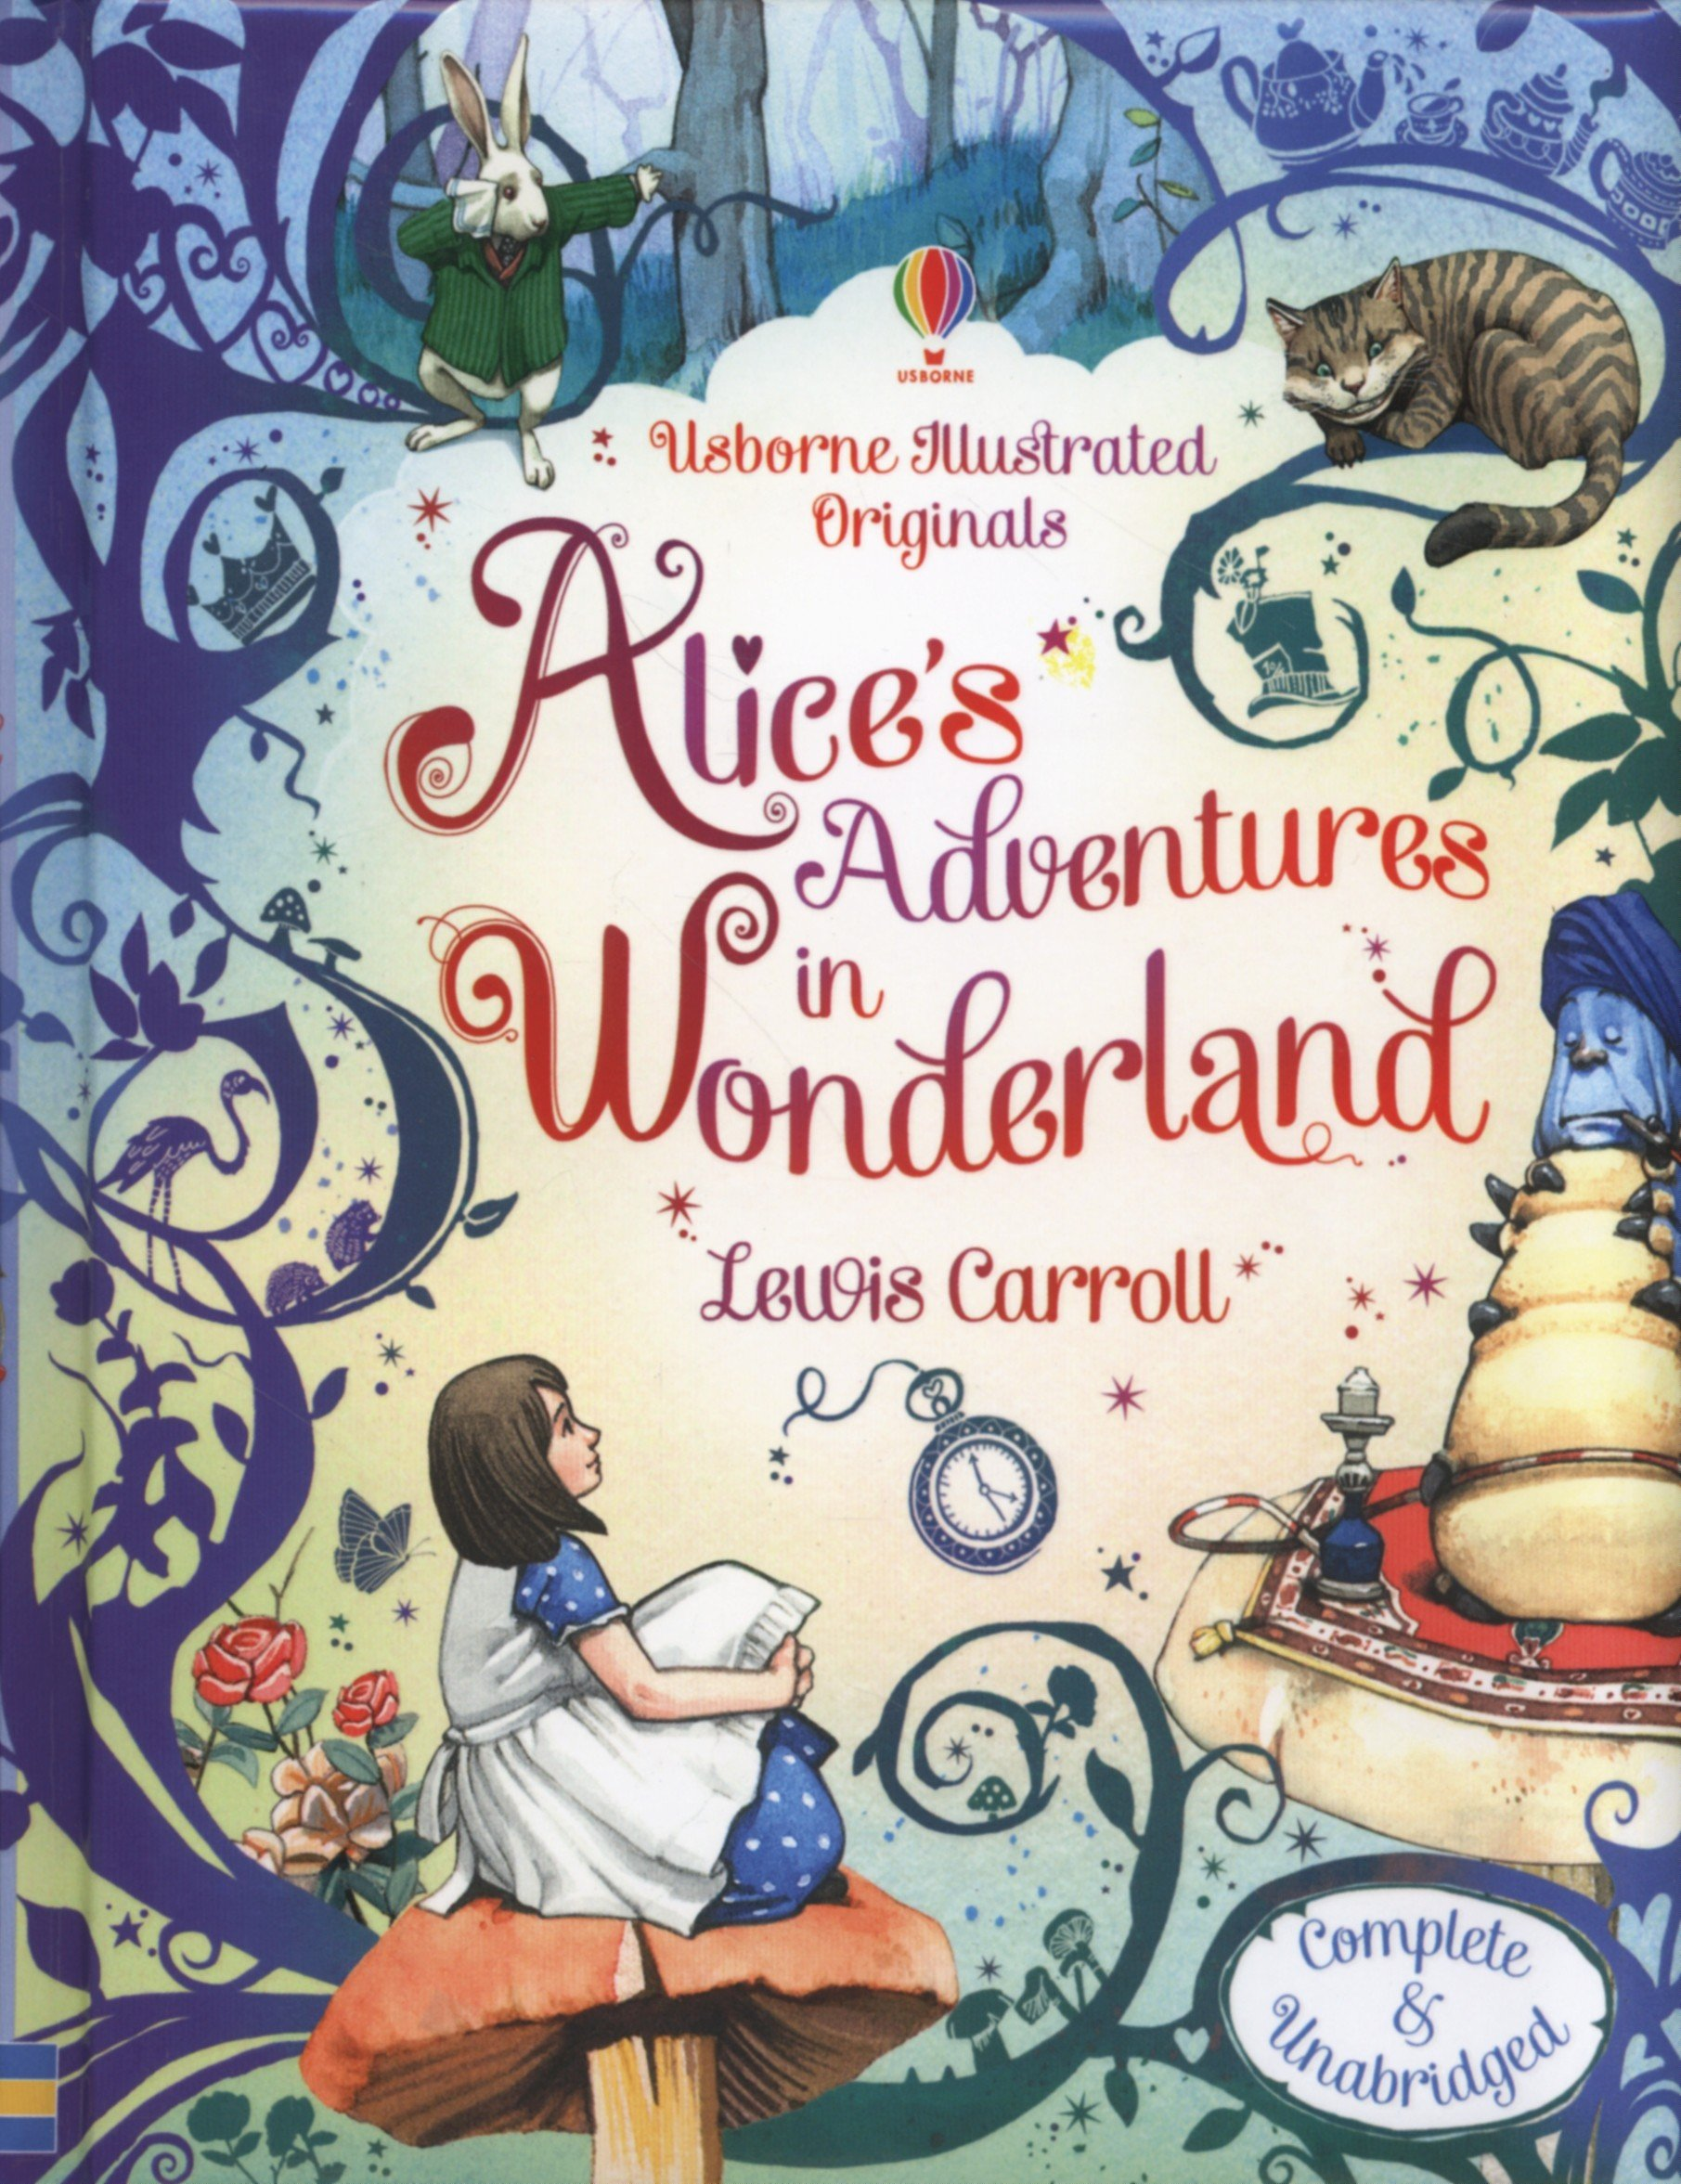 alice s adventures in wonderland and alice Alice is a fictional character and protagonist of lewis carroll's children's novel alice's adventures in wonderland (1865) and its sequel, through the looking-glass (1871) a child in the mid-victorian era, alice unintentionally goes on an underground adventure after accidentally falling down a rabbit hole into wonderland in the sequel, she steps through a mirror into an alternative world.